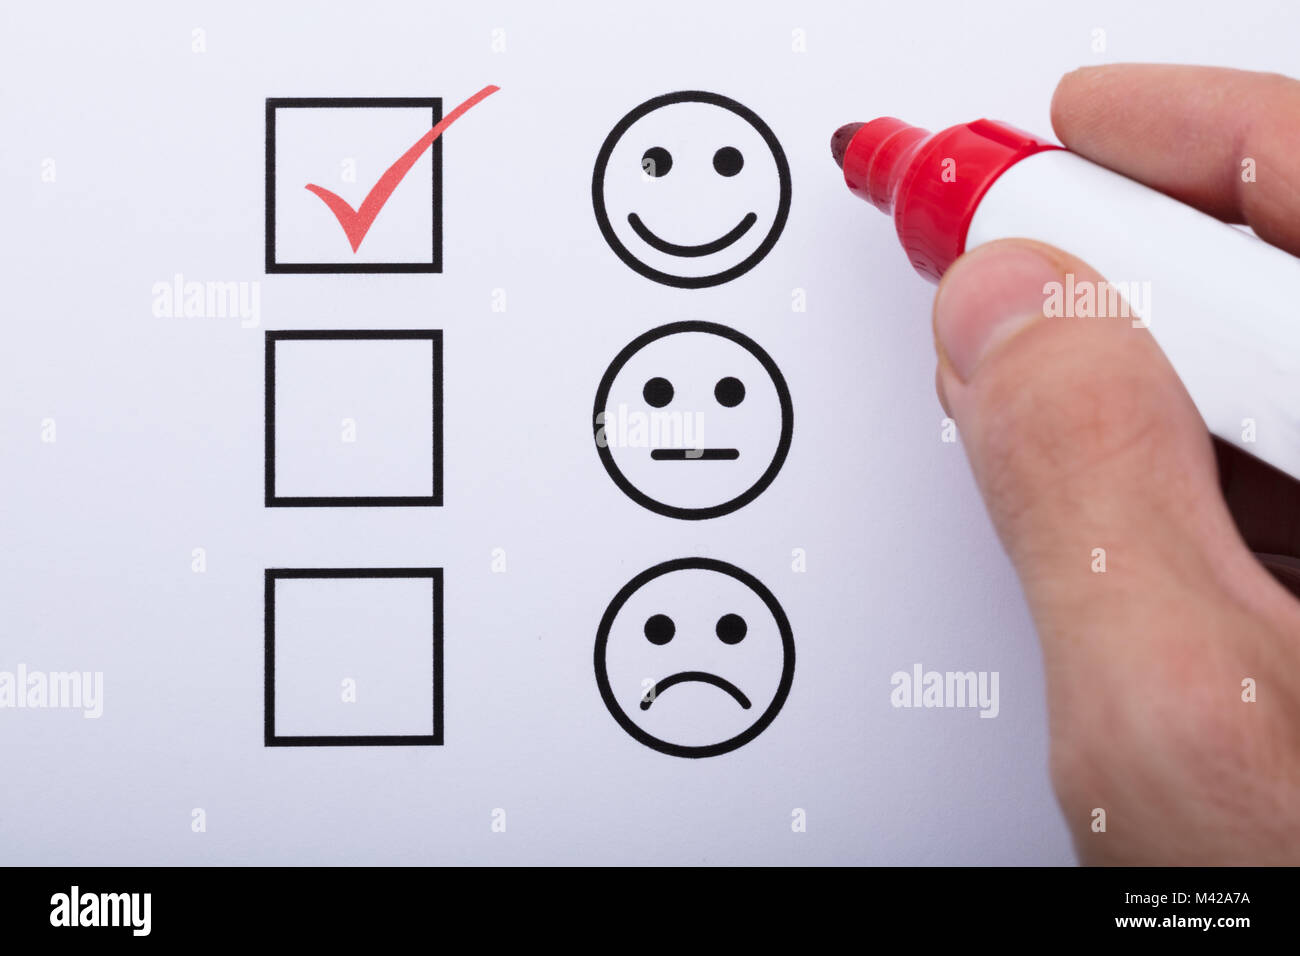 Close-up Of Person's Hand Ticking Off Checked Box With Red Marker - Stock Image